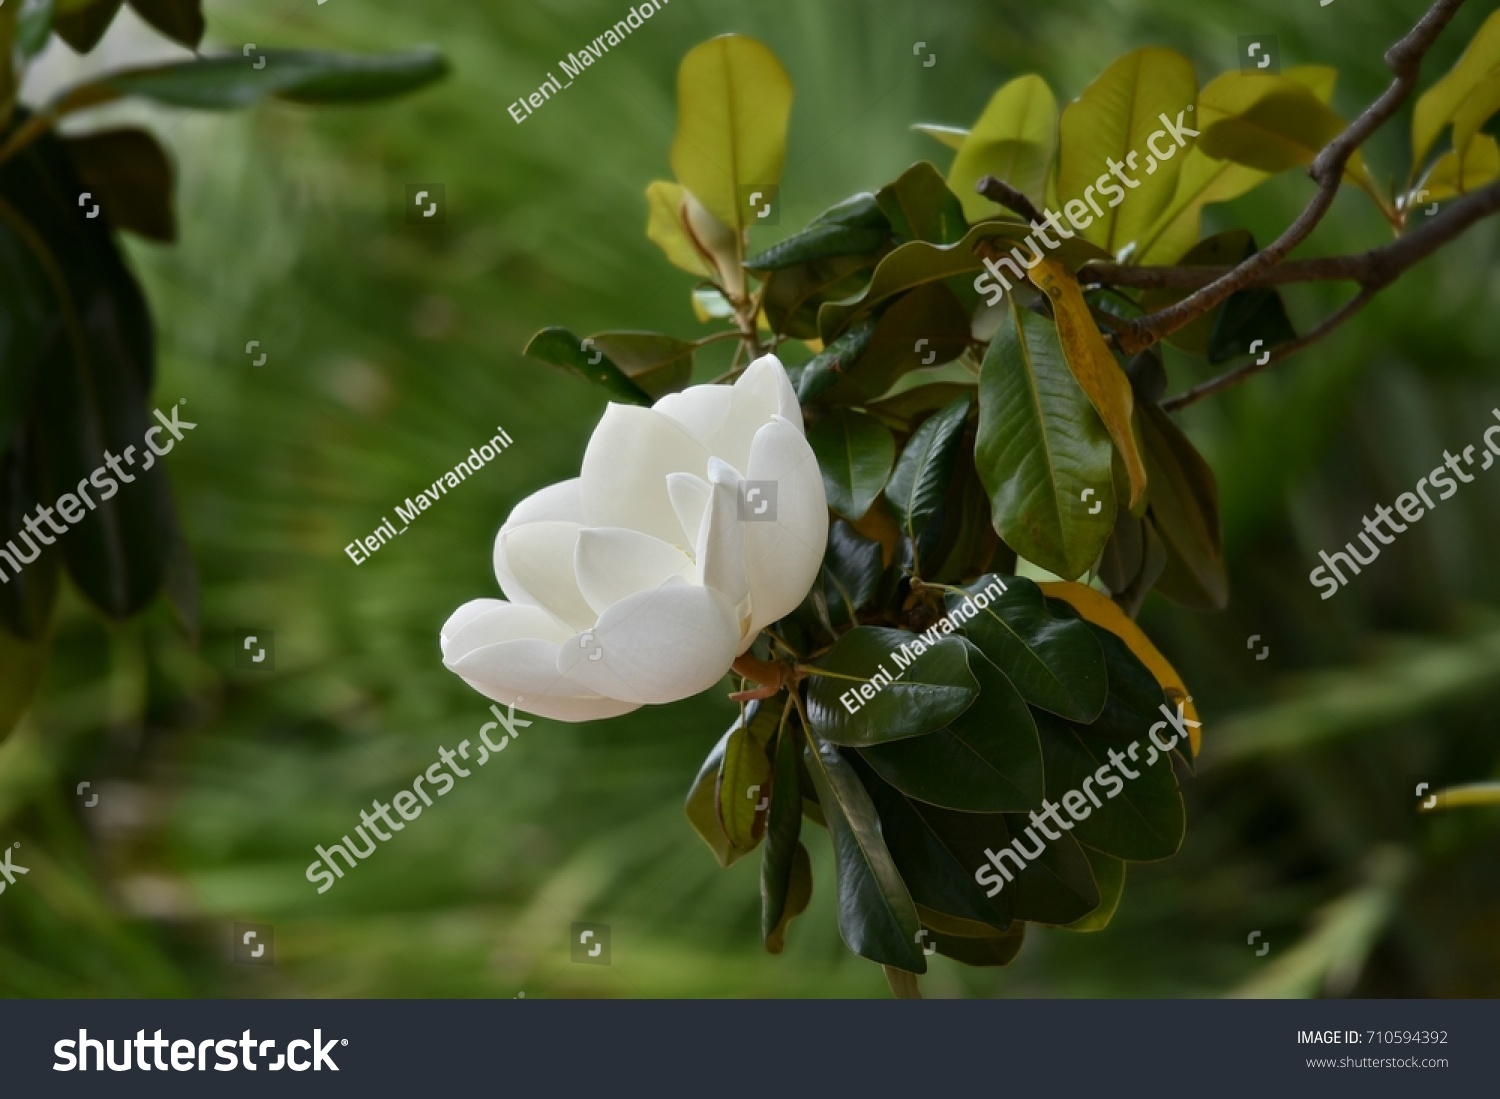 Magnolia Flowering Tree With Large Glossy Green Leaves With Veins